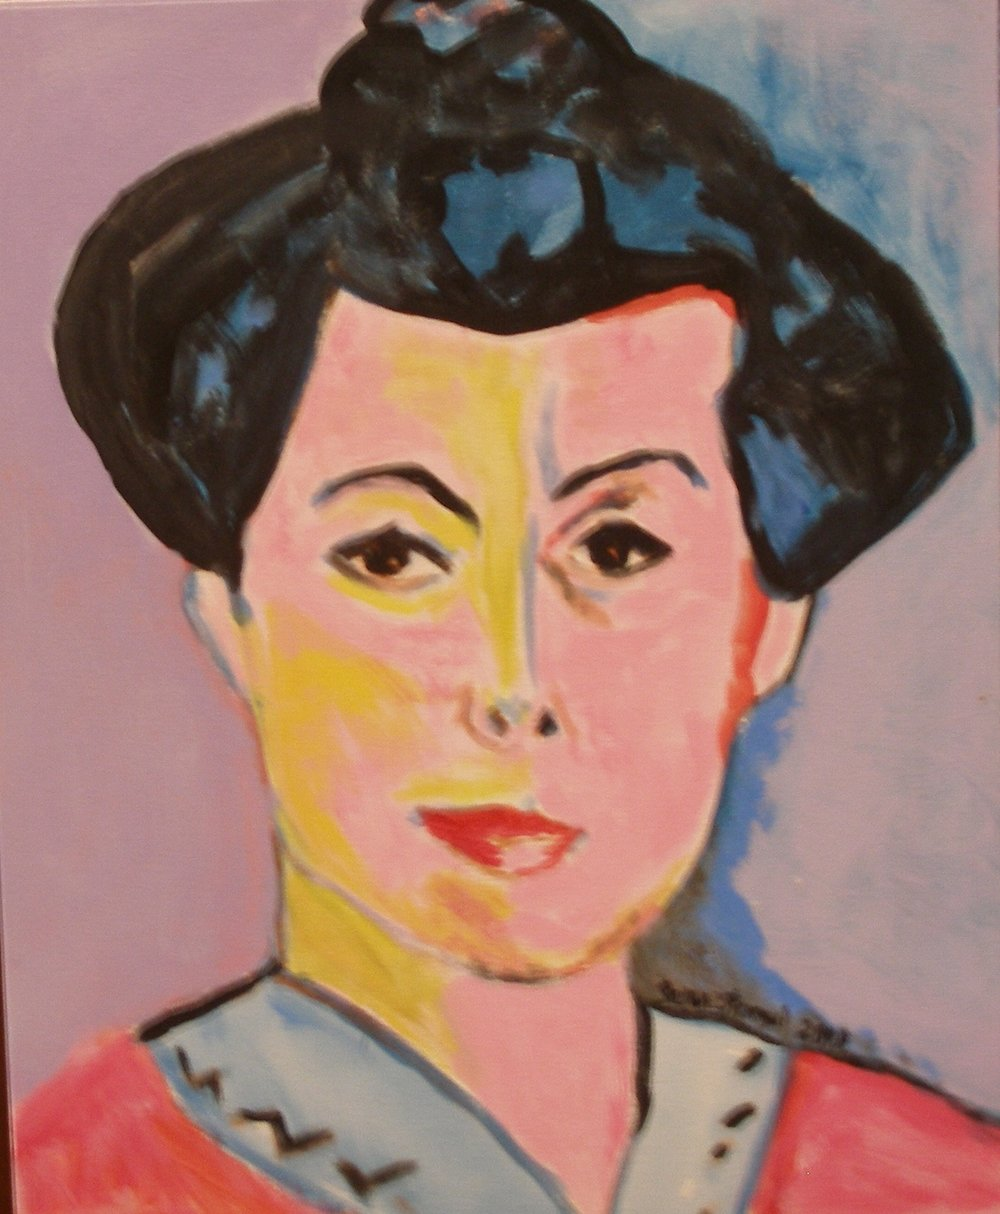 """$5,000. 16"""" x 20"""" acrylic on canvas w wood frame. """"A Study of Matisse's 'The Green Line'--Madame Matisse"""""""